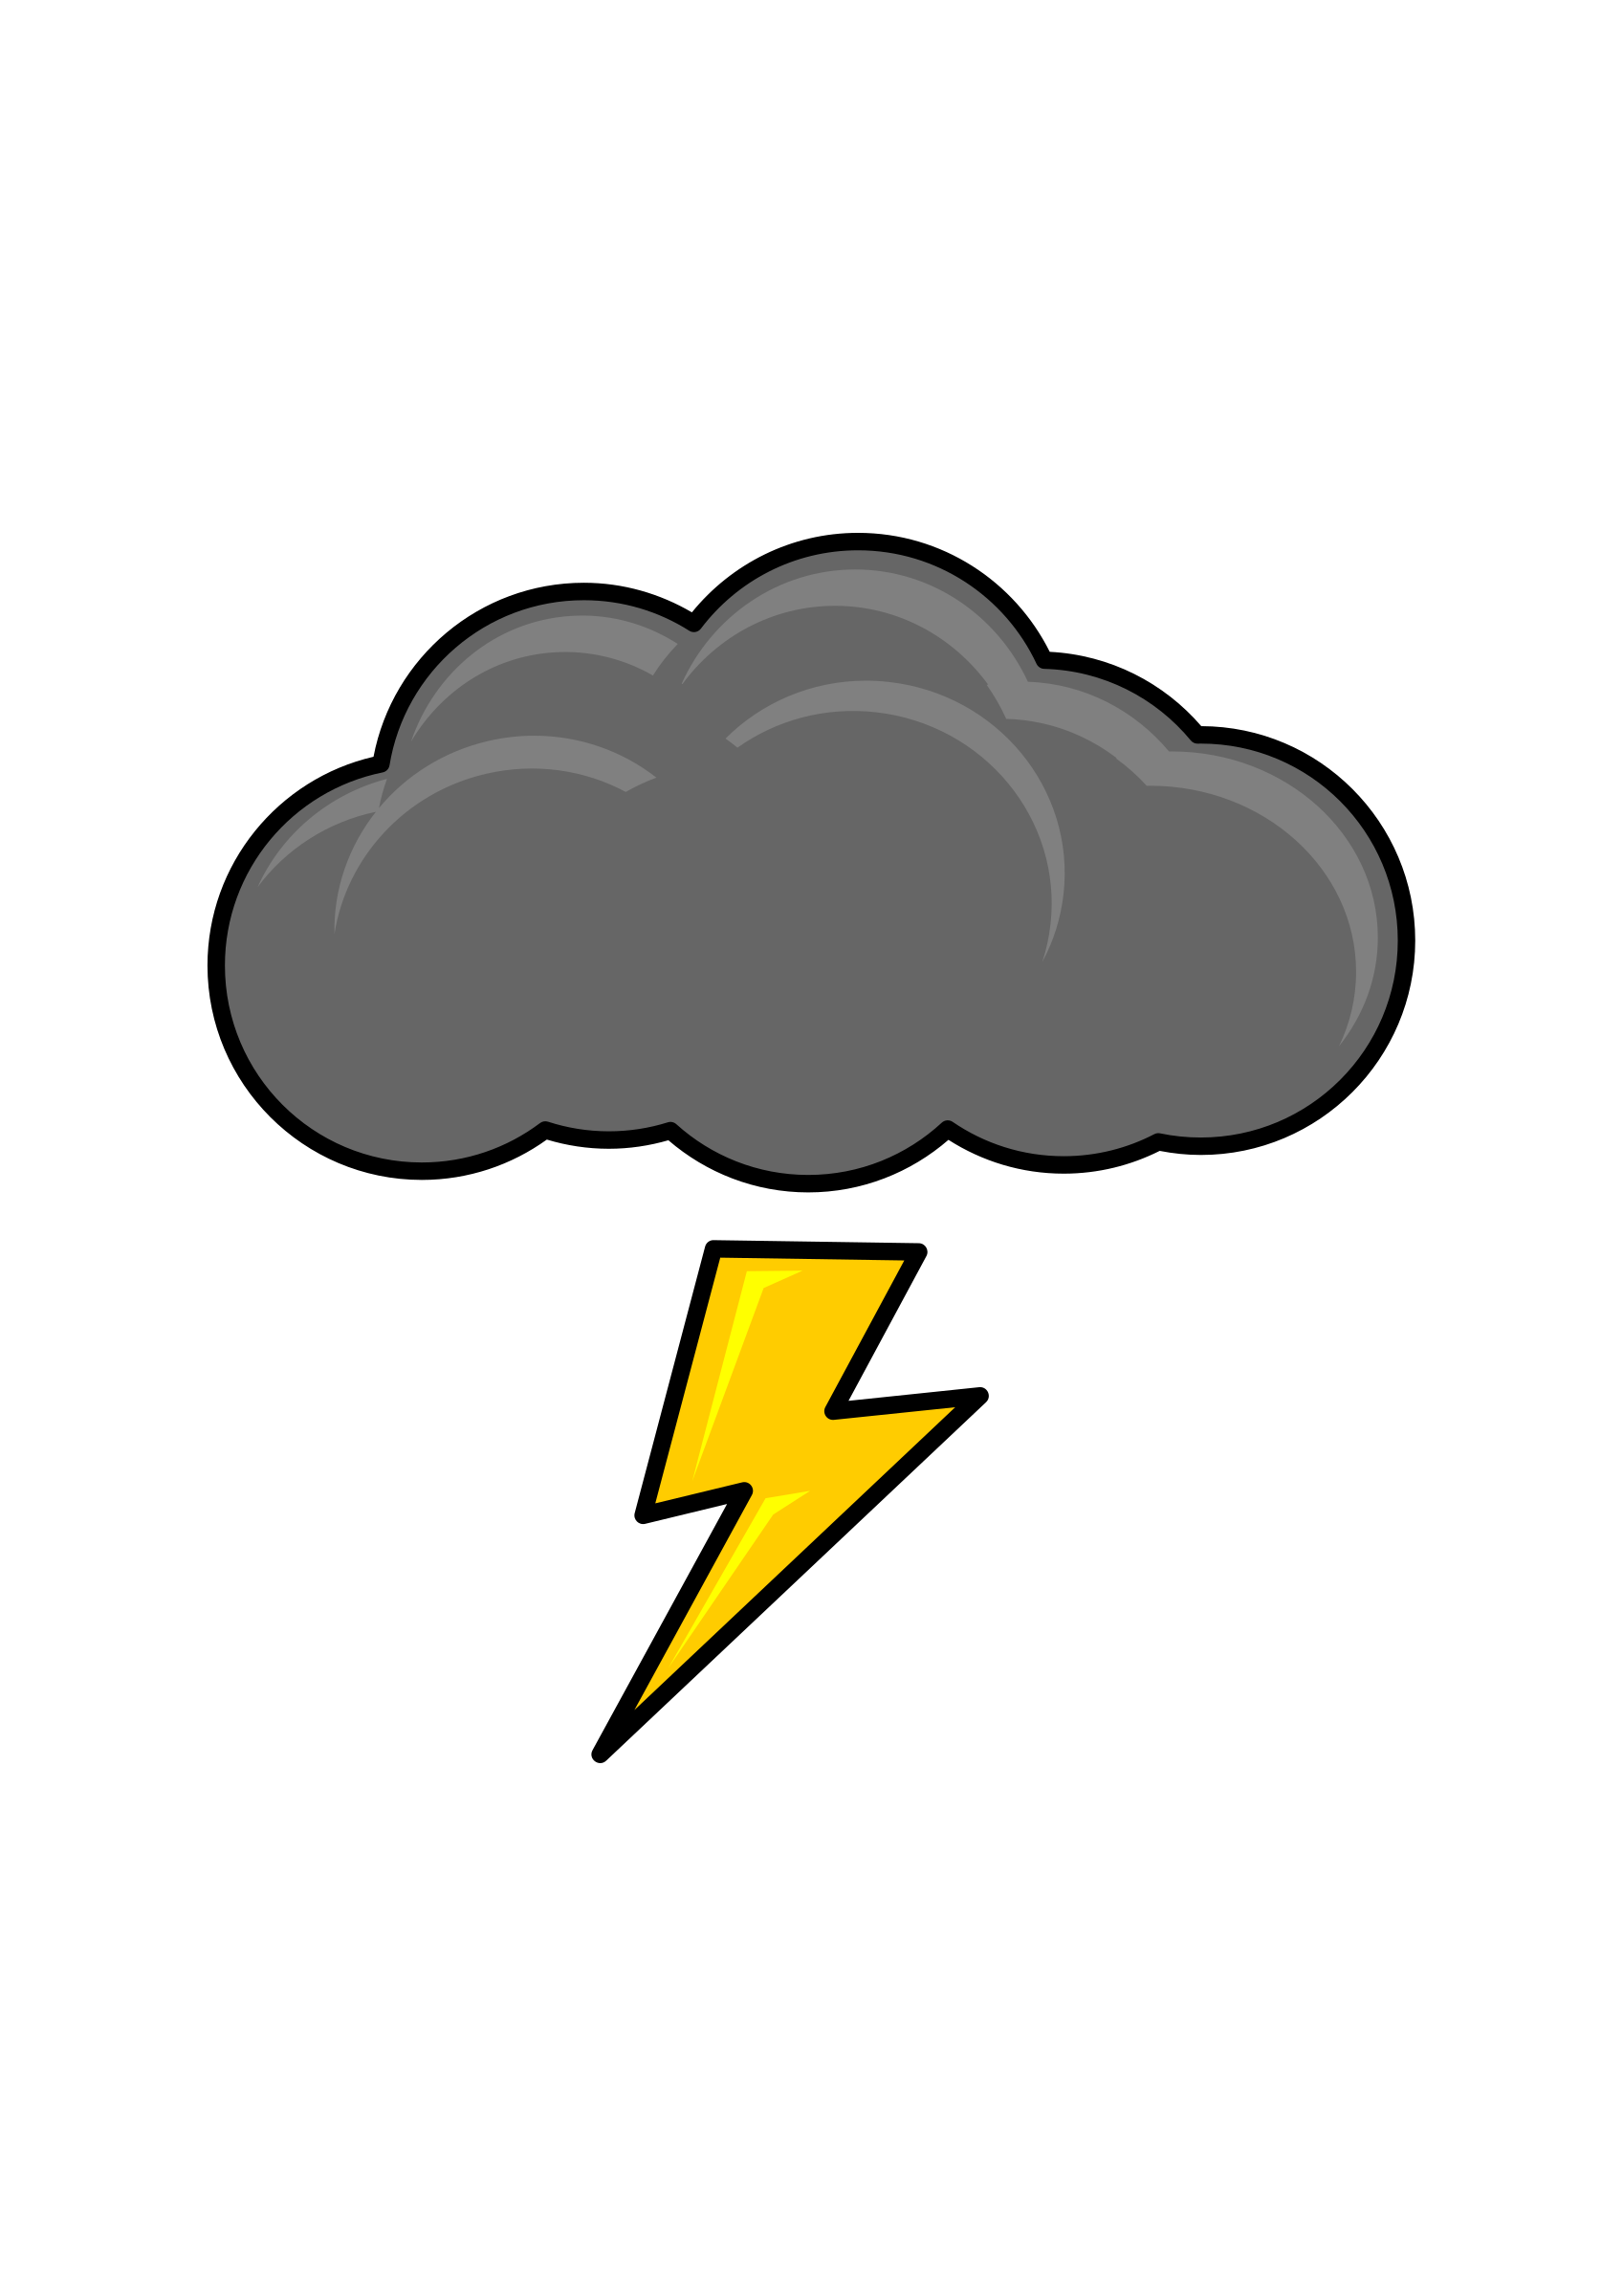 png stock Thundercloud big image png. Thunder cloud clipart